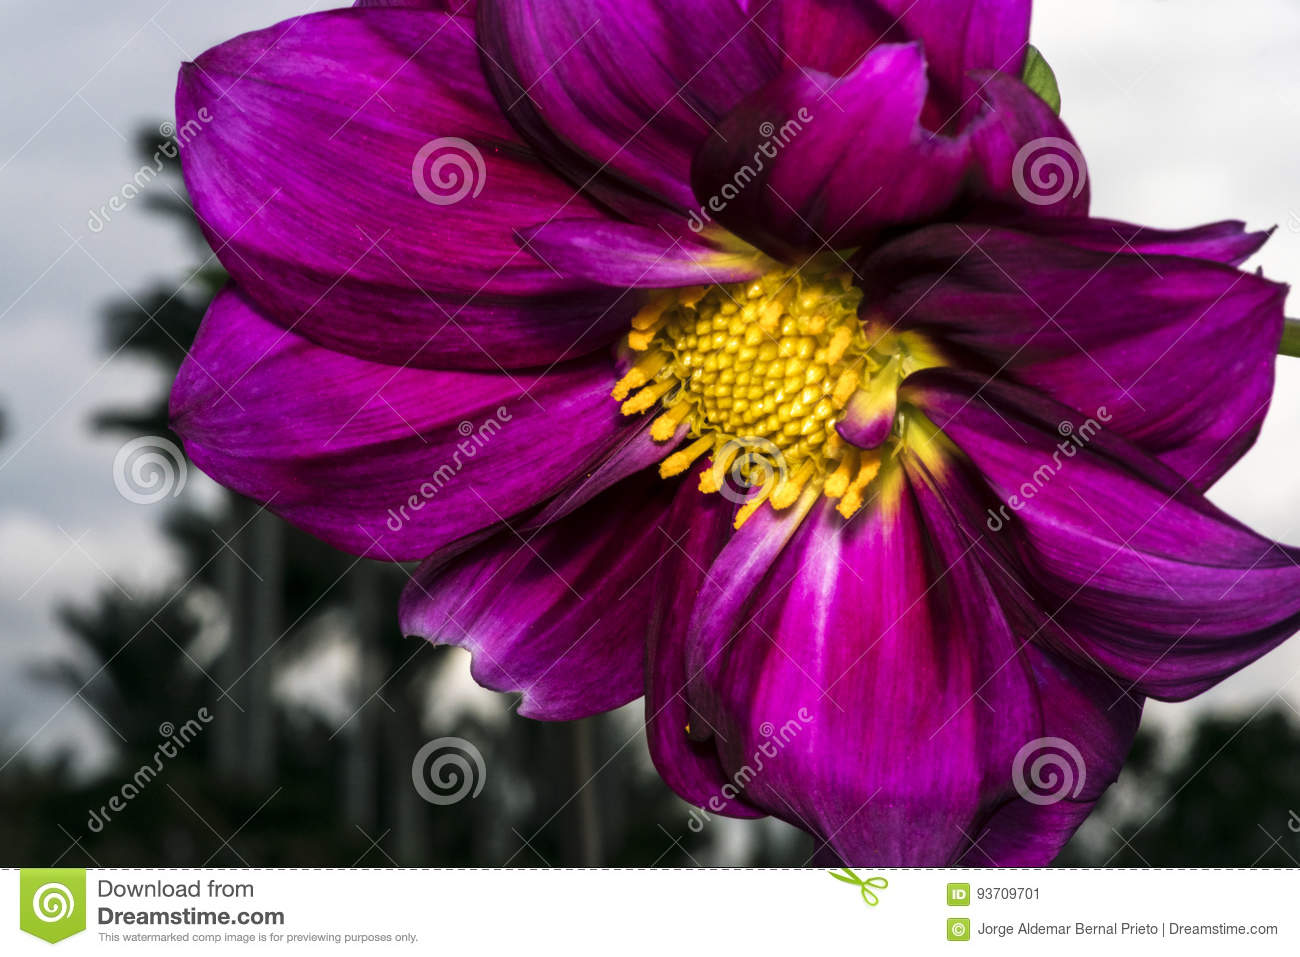 Purple flower with yellow stamen and pollen stock image image of purple flower with yellow stamen and pollen mightylinksfo